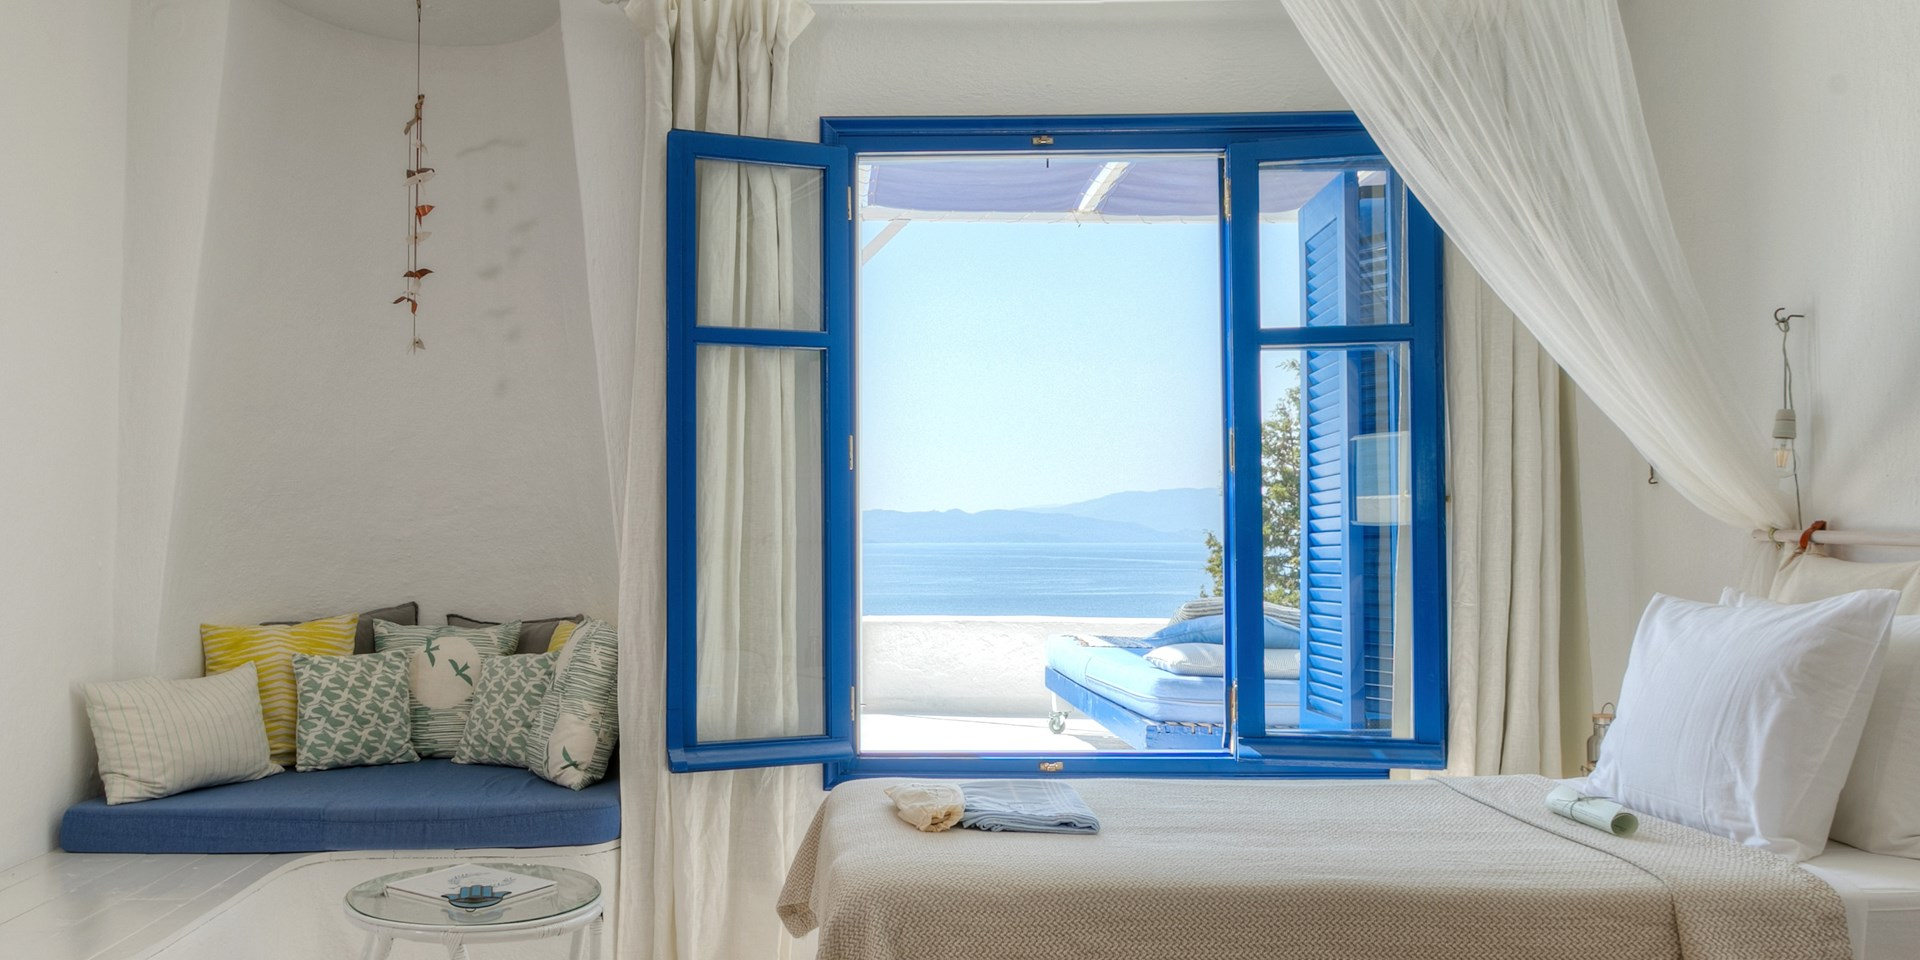 A room with a blue painted window and view of the sea